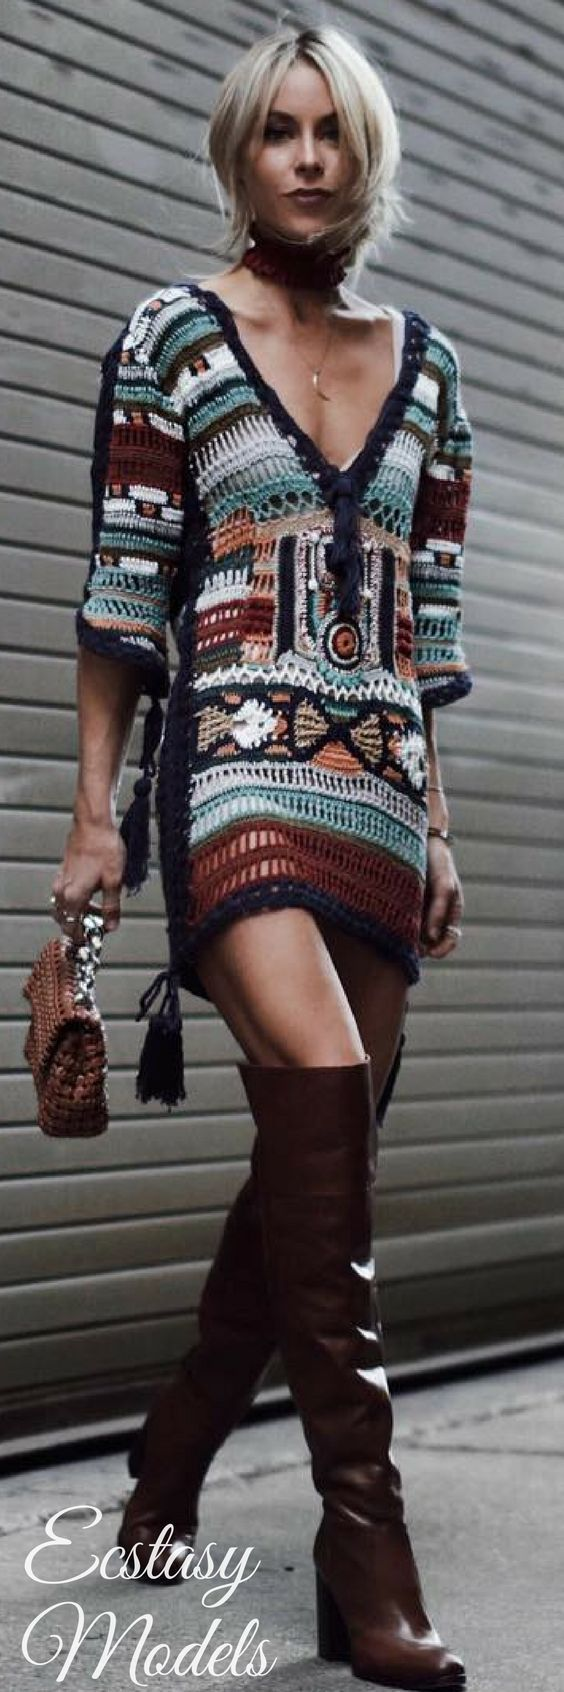 Deep V sweater dress in Aztec and Boho shades with OTK boots. The long silver chain link cross-body bag adds charm & an edgy accessory to a plain 2 p…